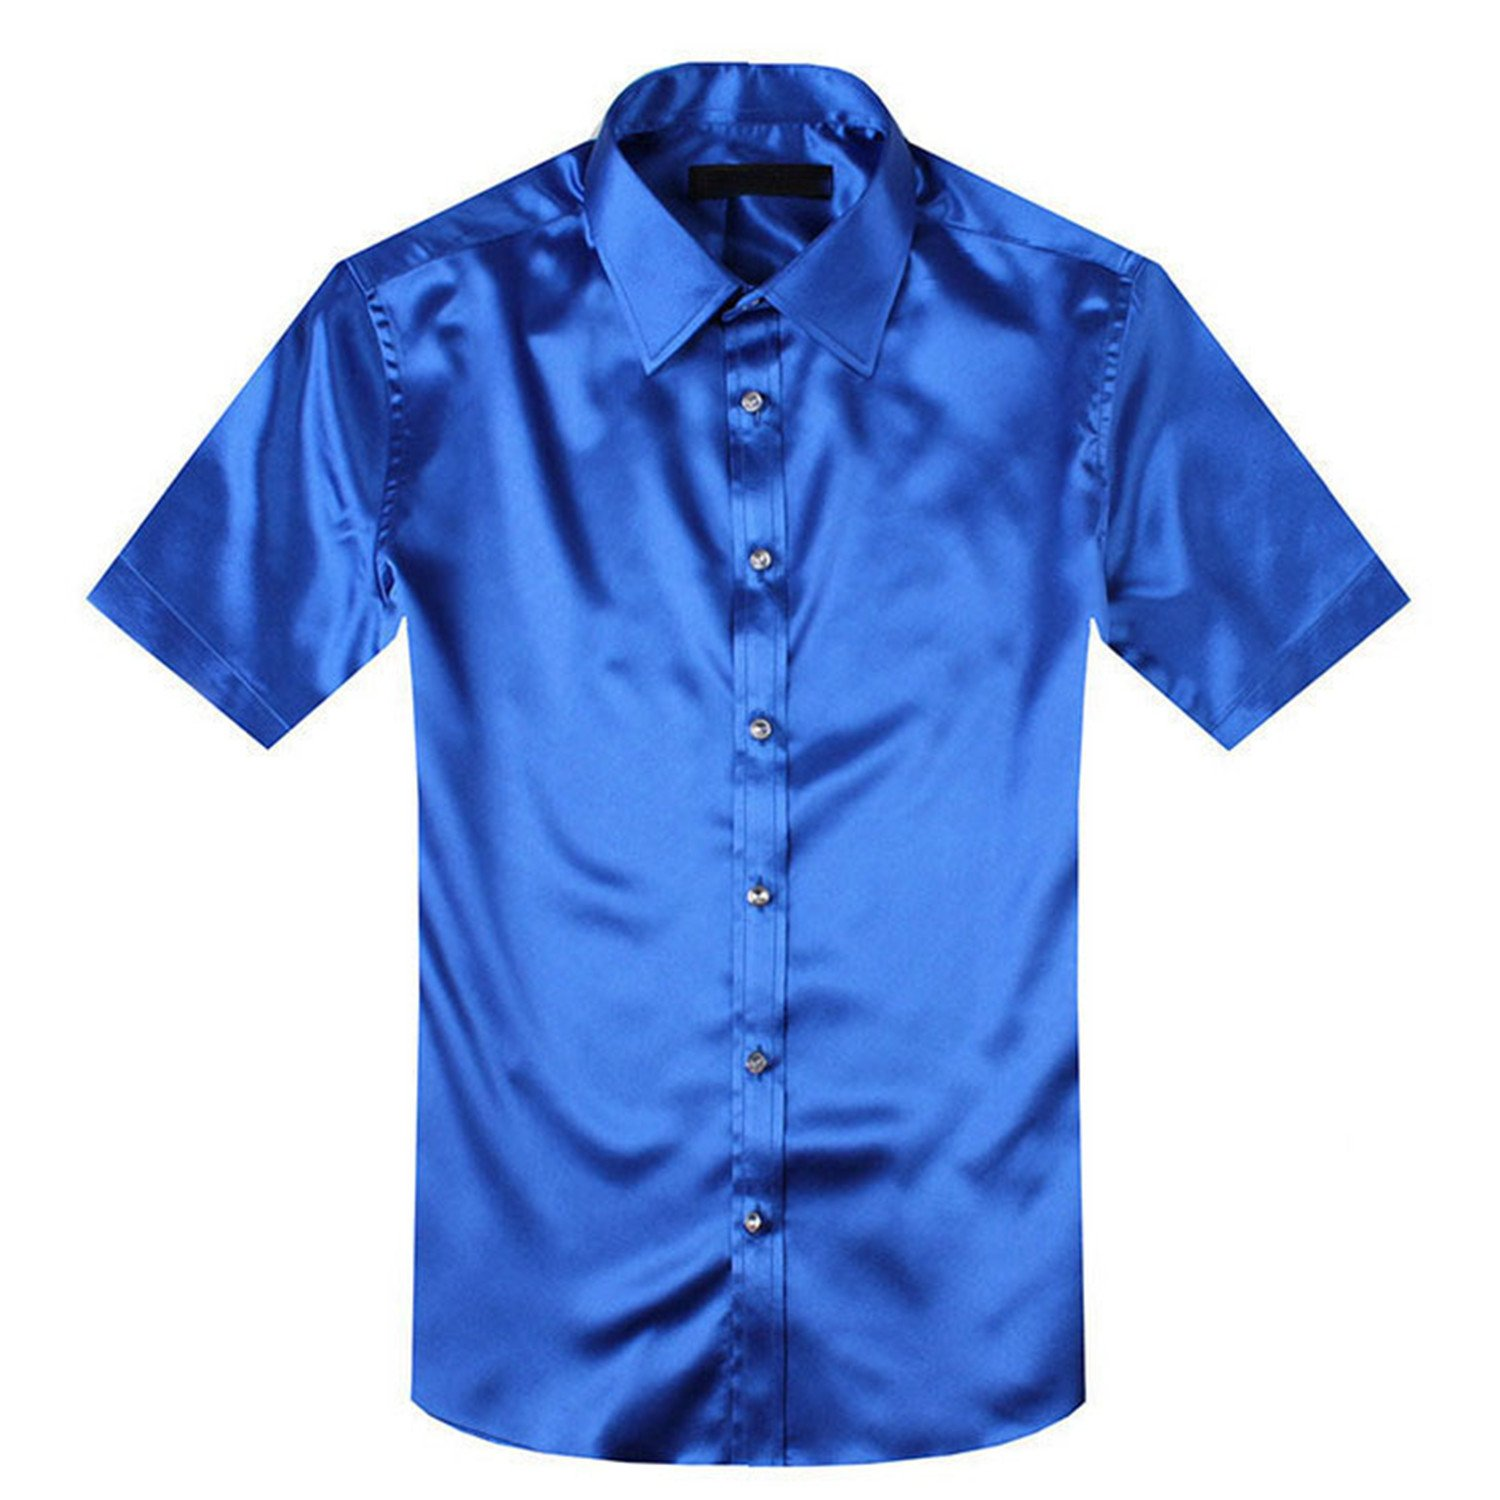 af943c98108 Mary Steele Men Shirts Clearance Polo Summer Style Silk Short Sleeve Men  Dress Shirts Casual Men Shirt Hombre at Amazon Men s Clothing store